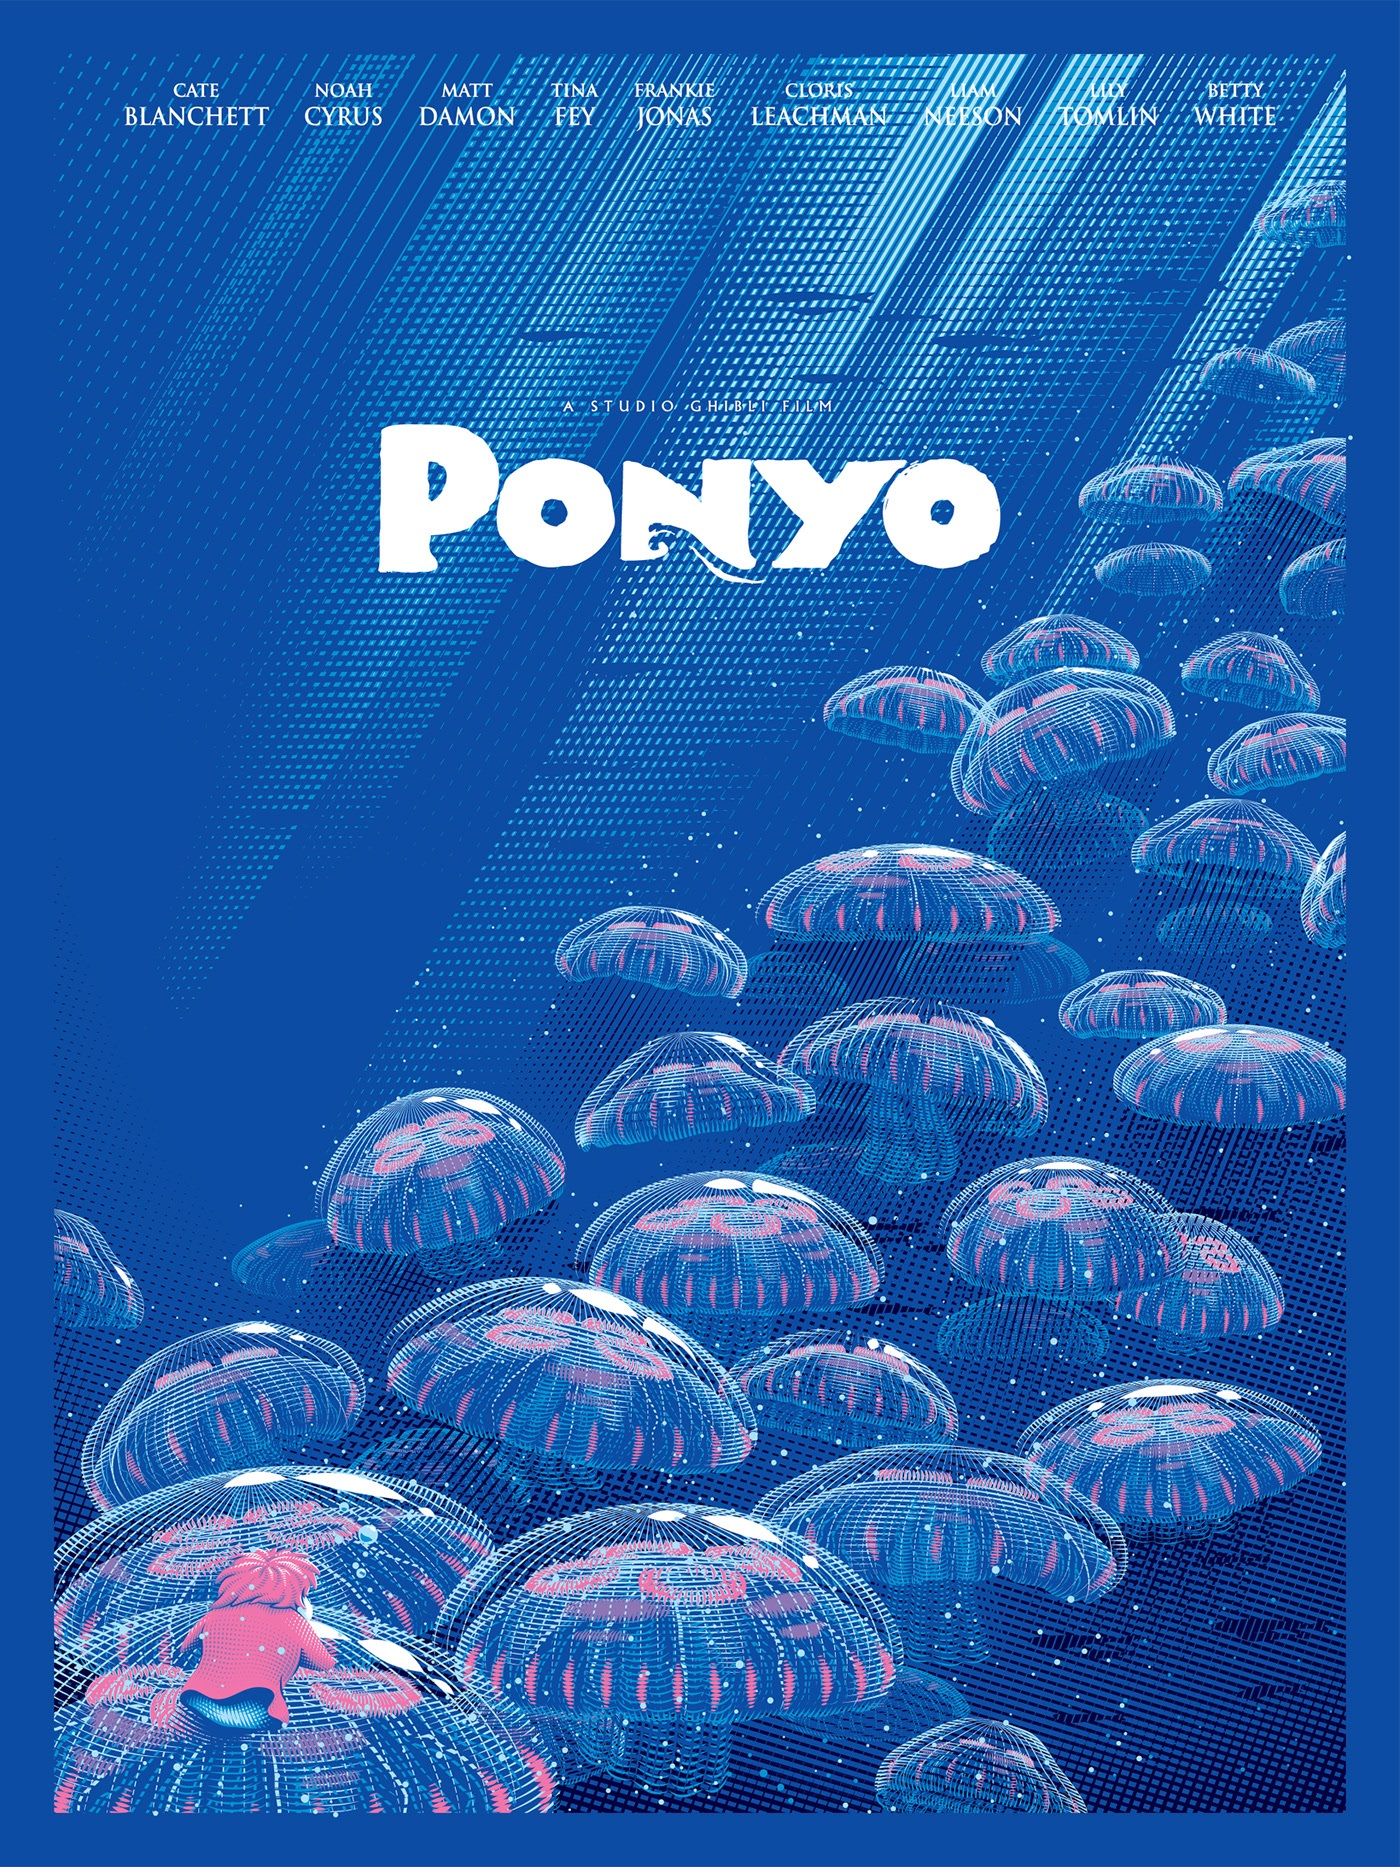 poster design portrait illustration ponyo